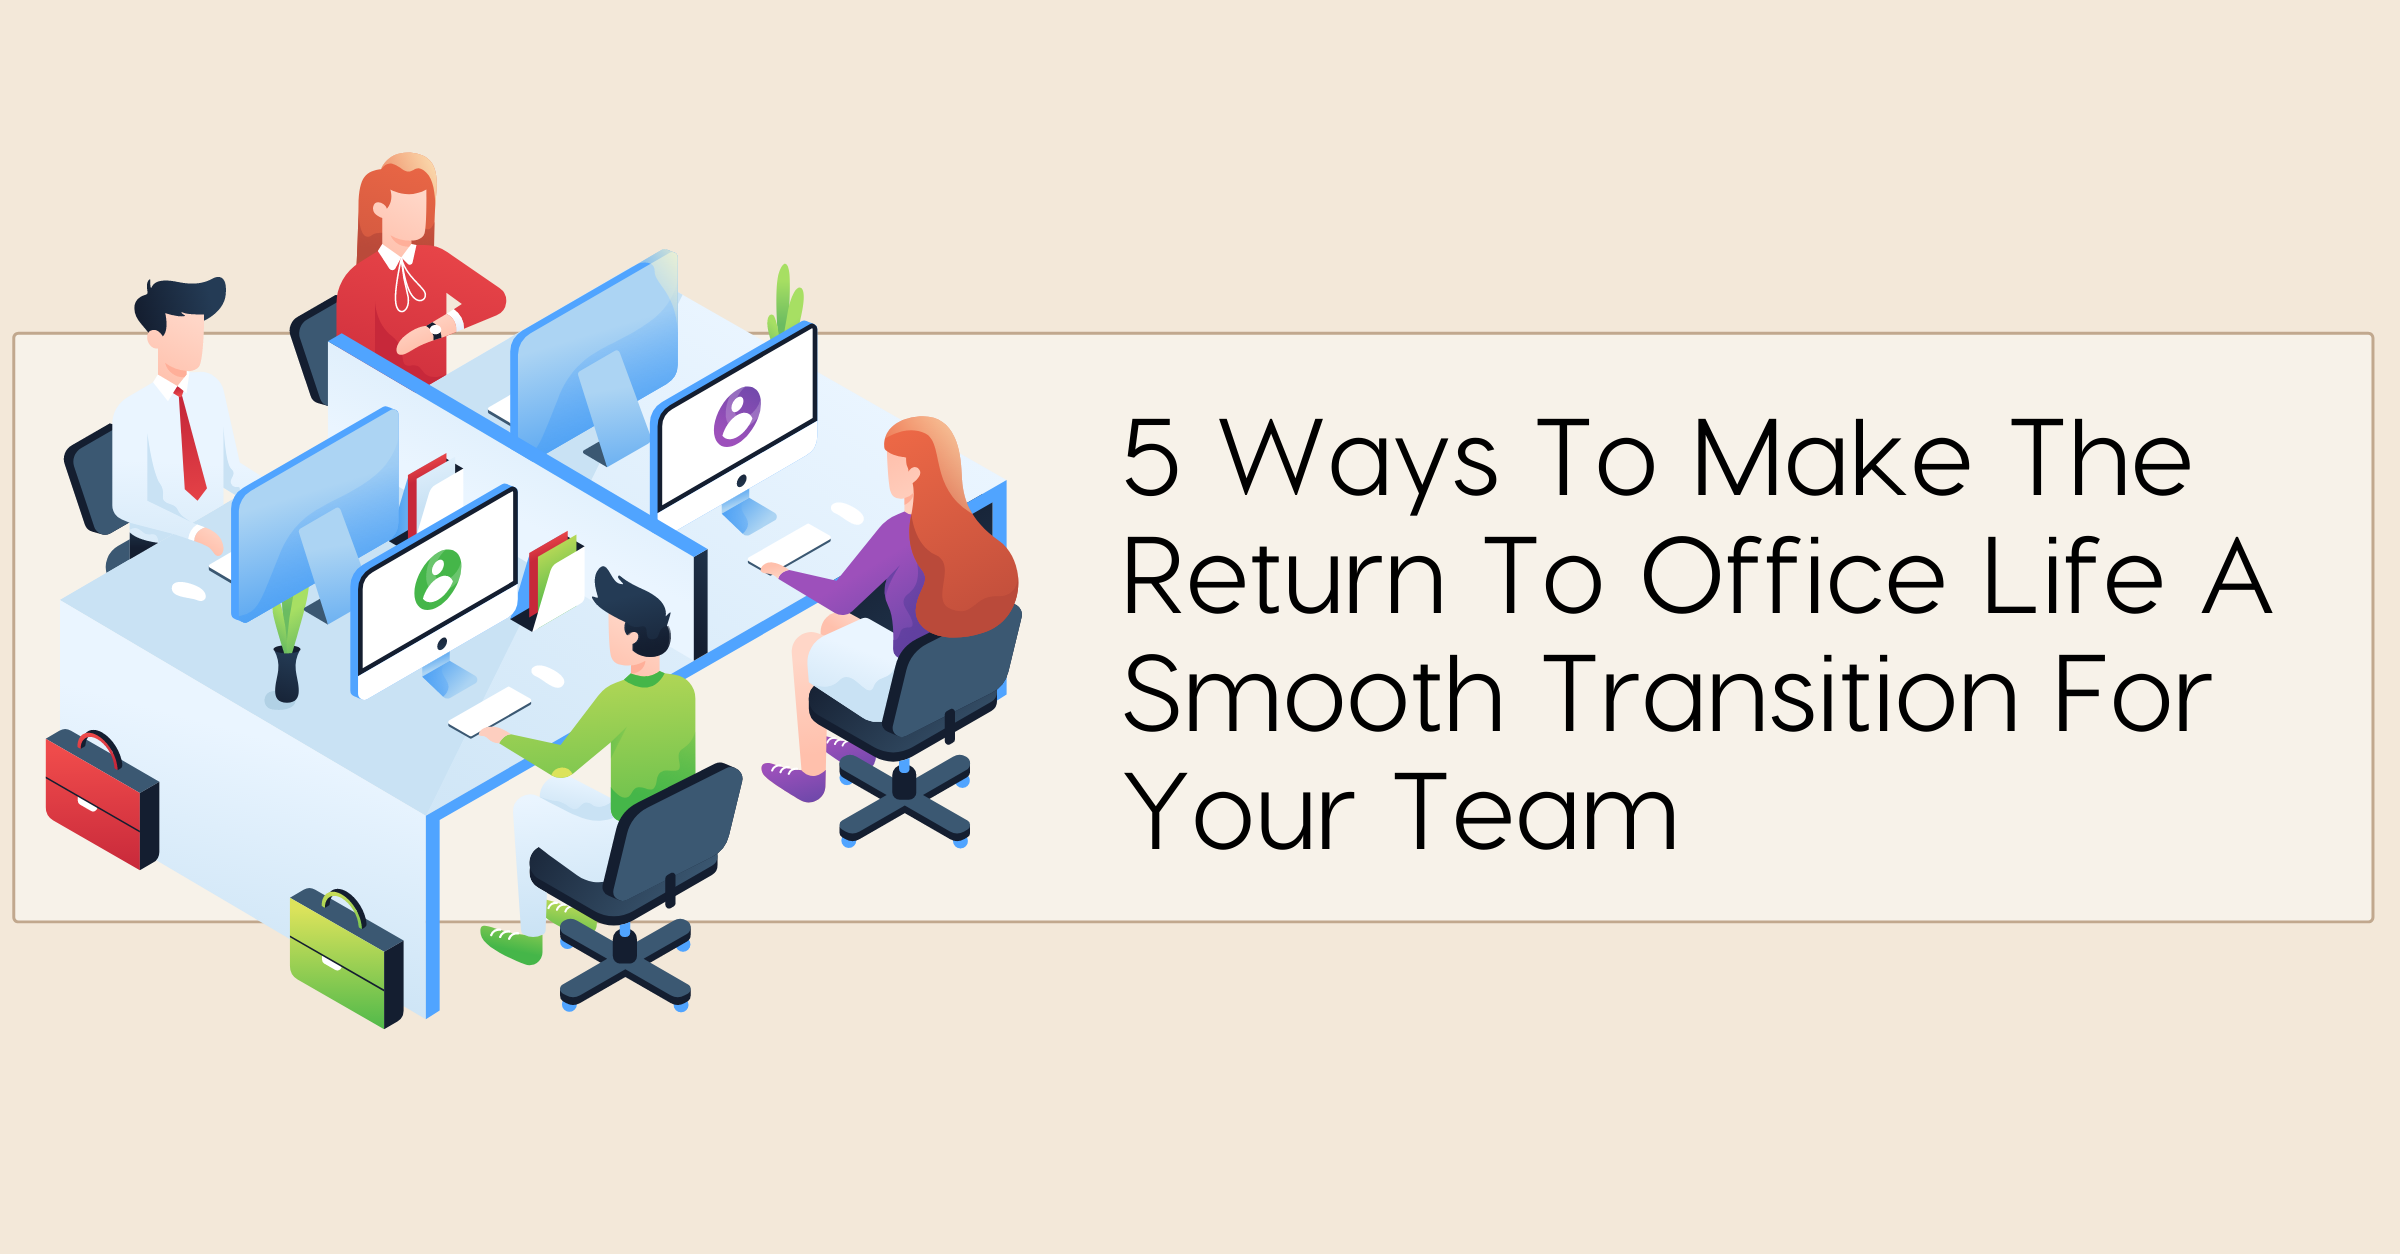 5 Ways To Make The Return To Office Life A Smooth Transition